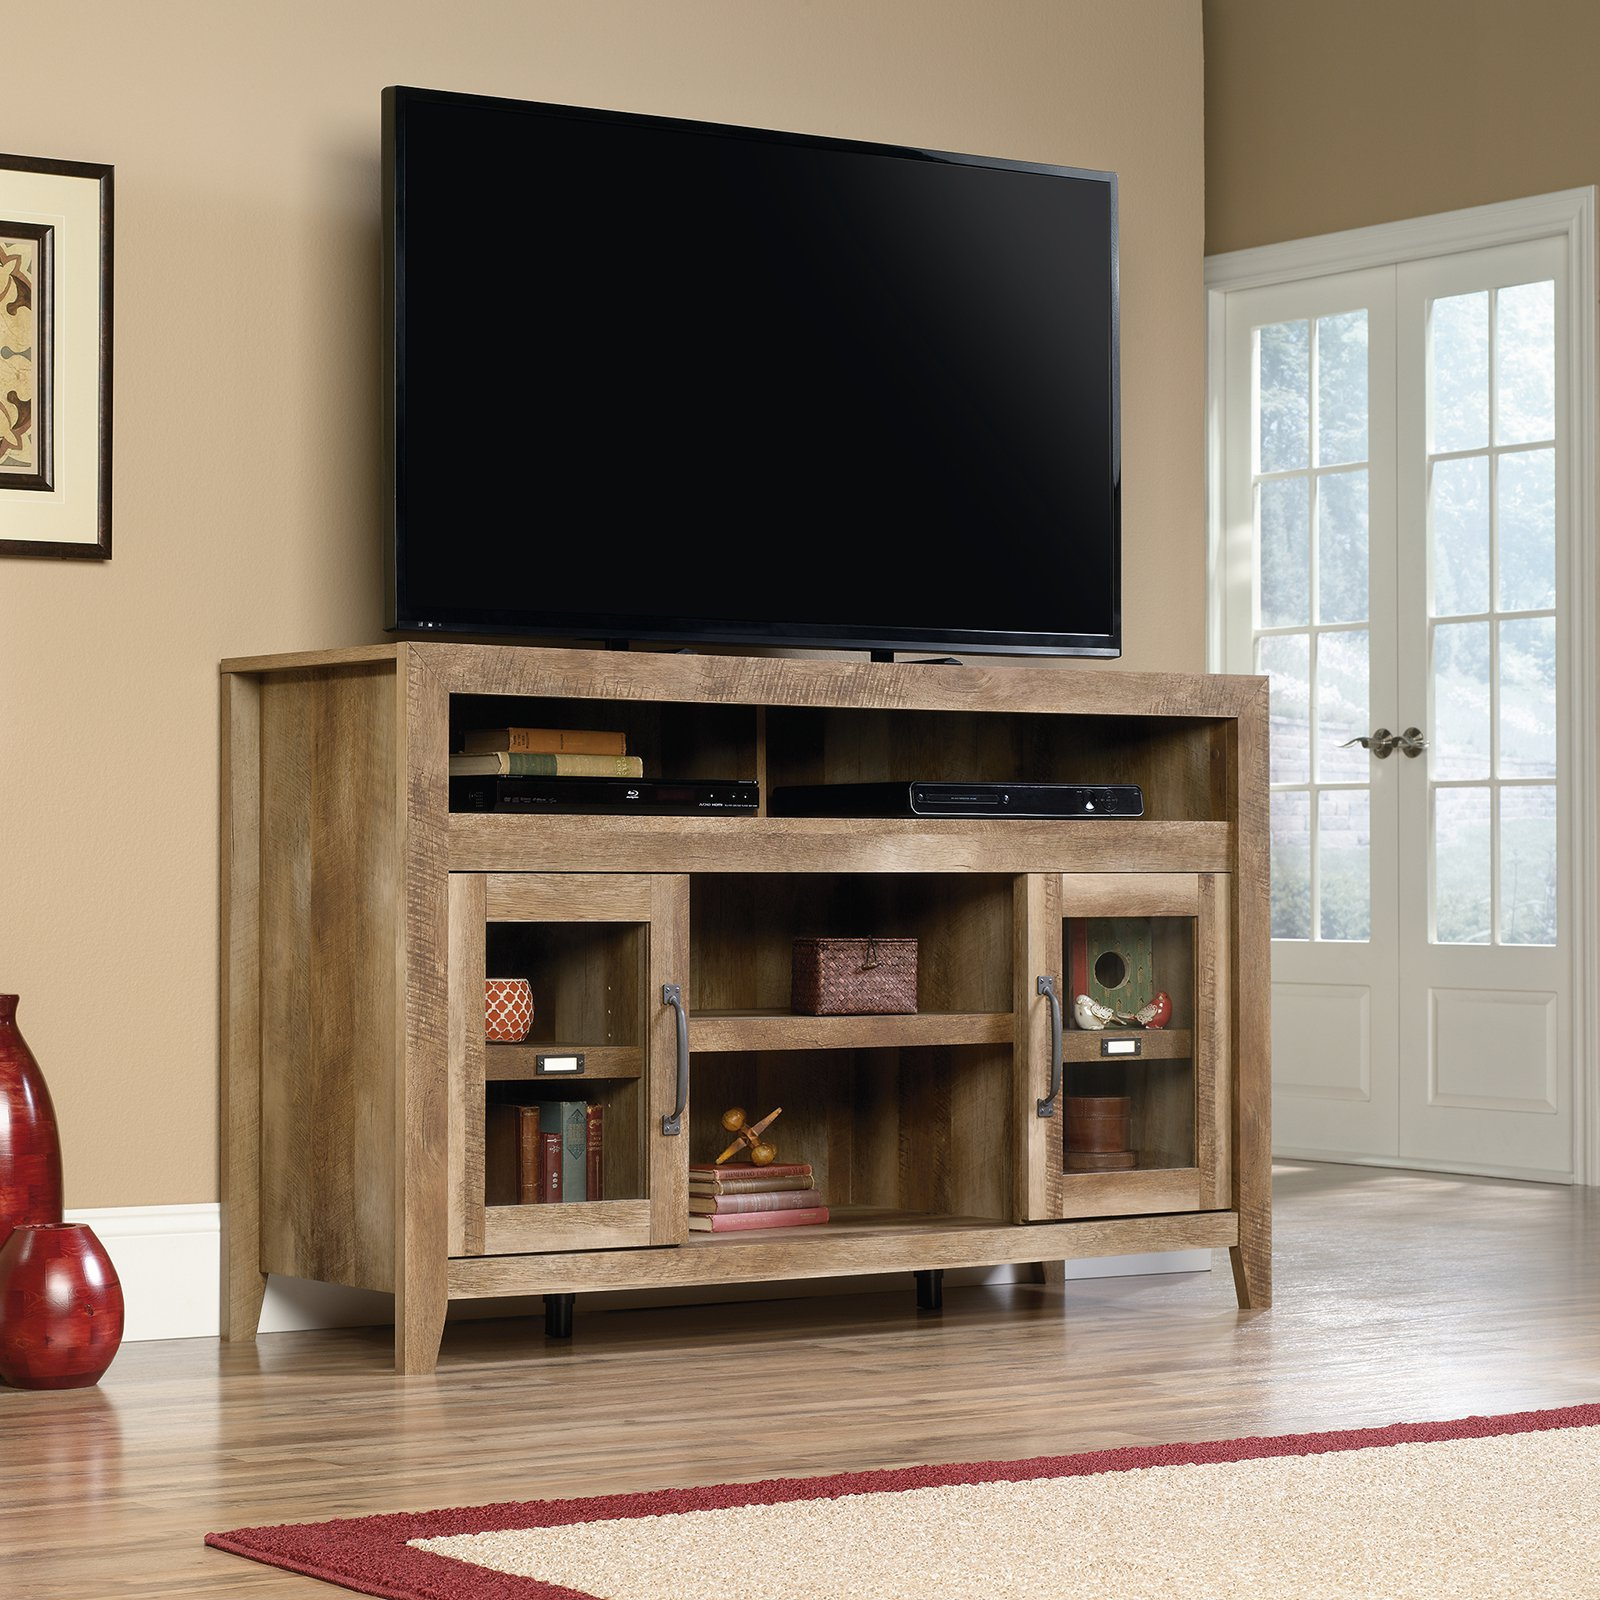 """Sauder Stone Valley Entertainment Credenza for TVs up to 60"""", Craftsman Oak Finish"""